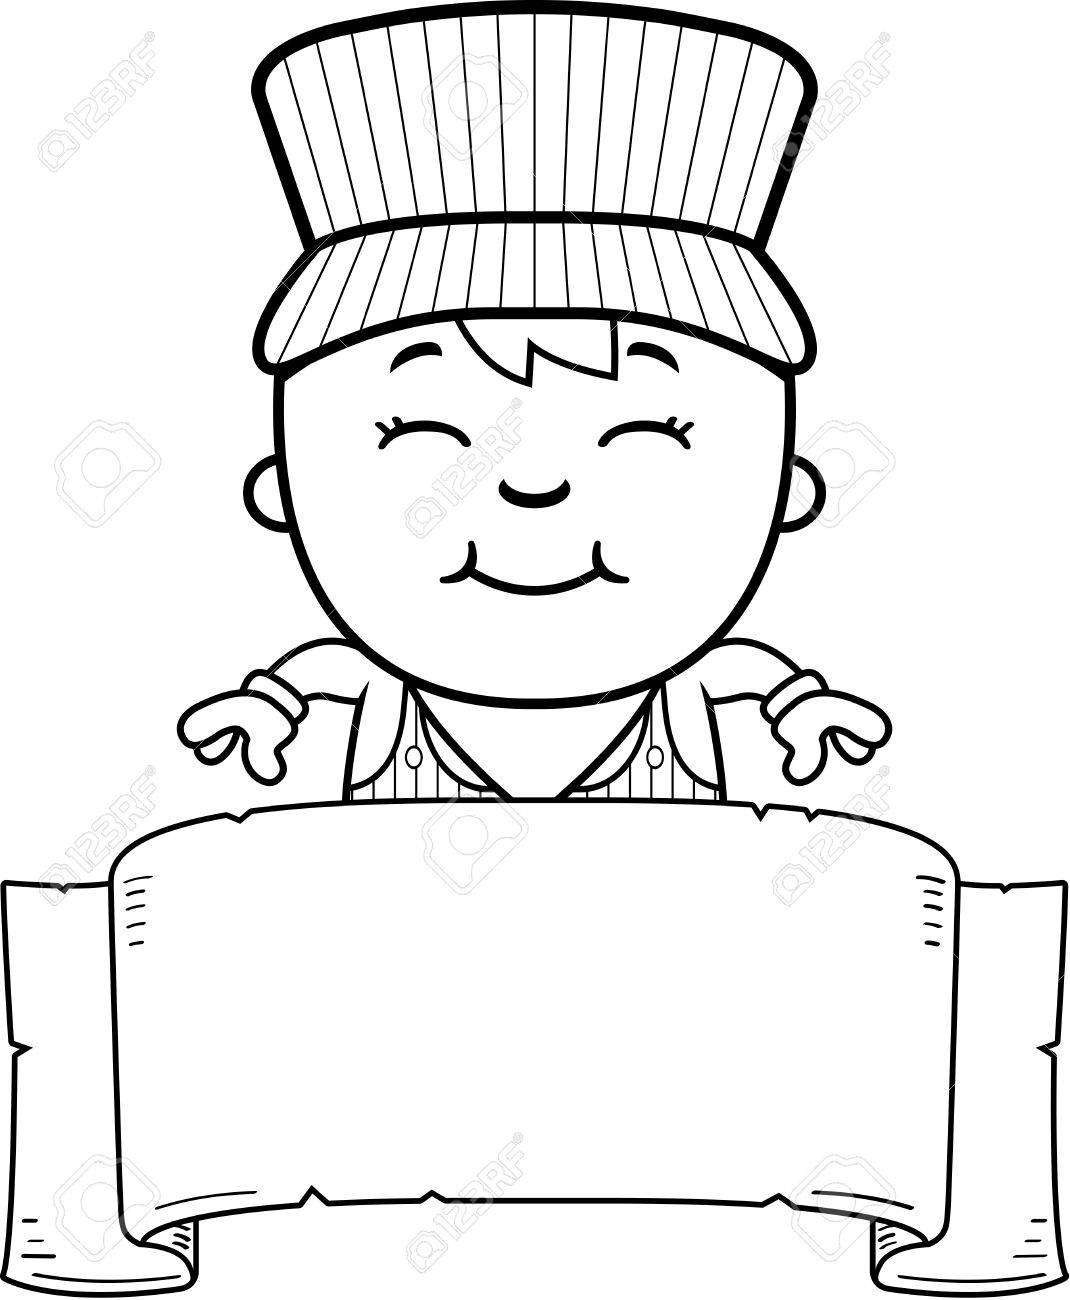 1070x1300 A Cartoon Illustration Of A Boy Train Conductor With A Banner